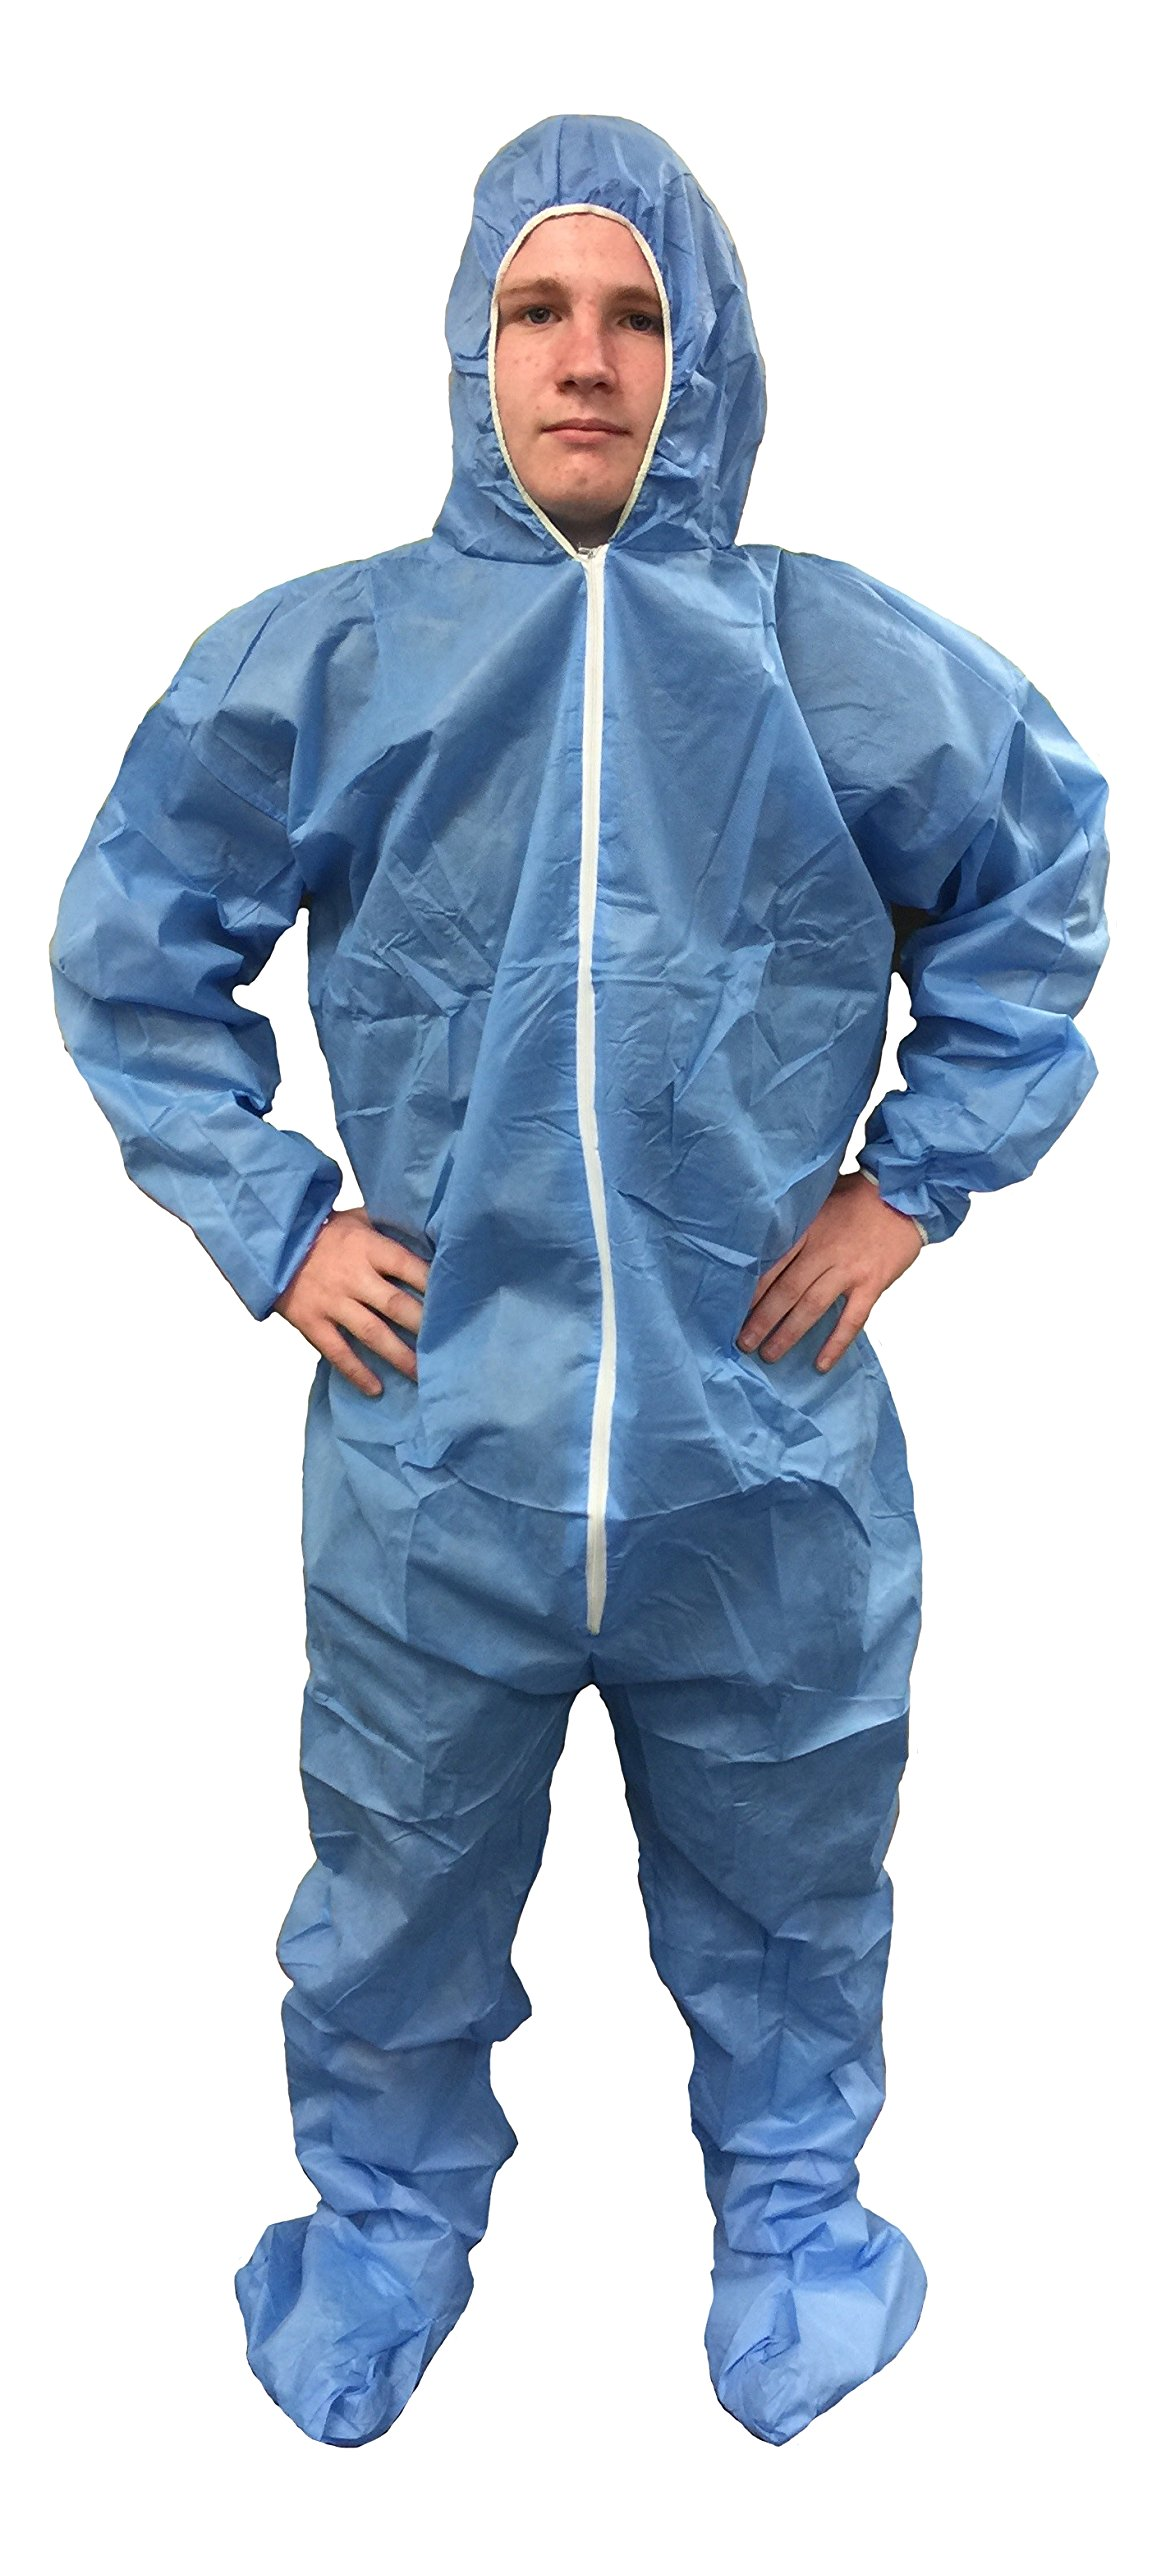 Safe N' Clean SMS Blue Coverall Suit Hood, Boots, and Elastic Wrists 25/case by TheSafetyHouse